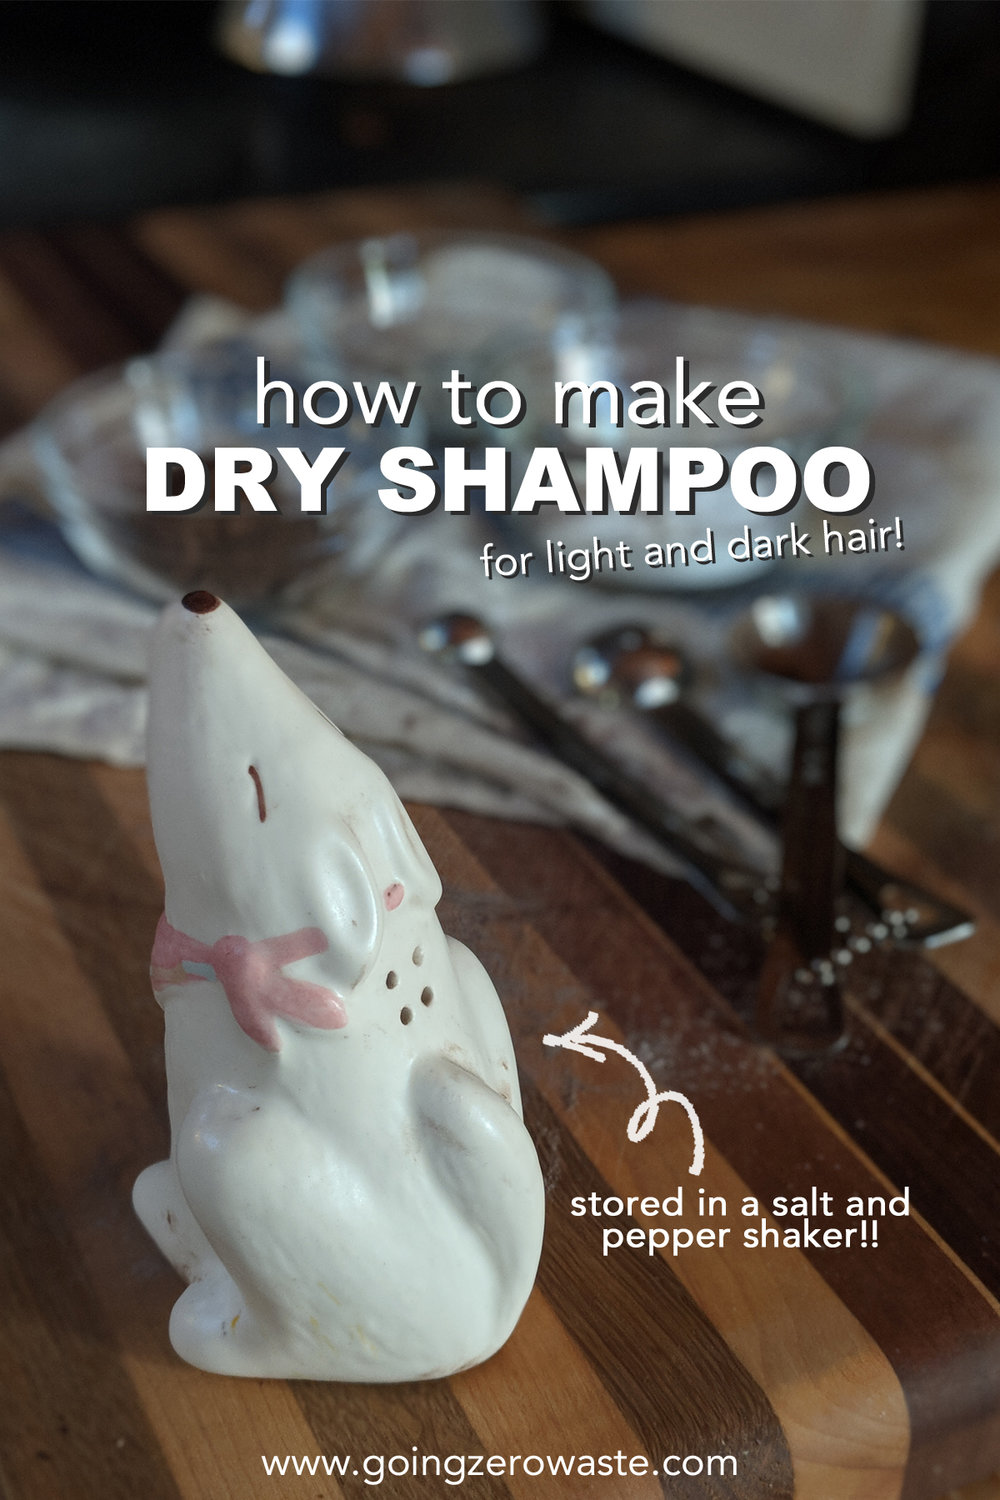 How to make dry shampoo for light and dark hair from www.goingzerowaste.com #dryshampoo #diybeauty #diy